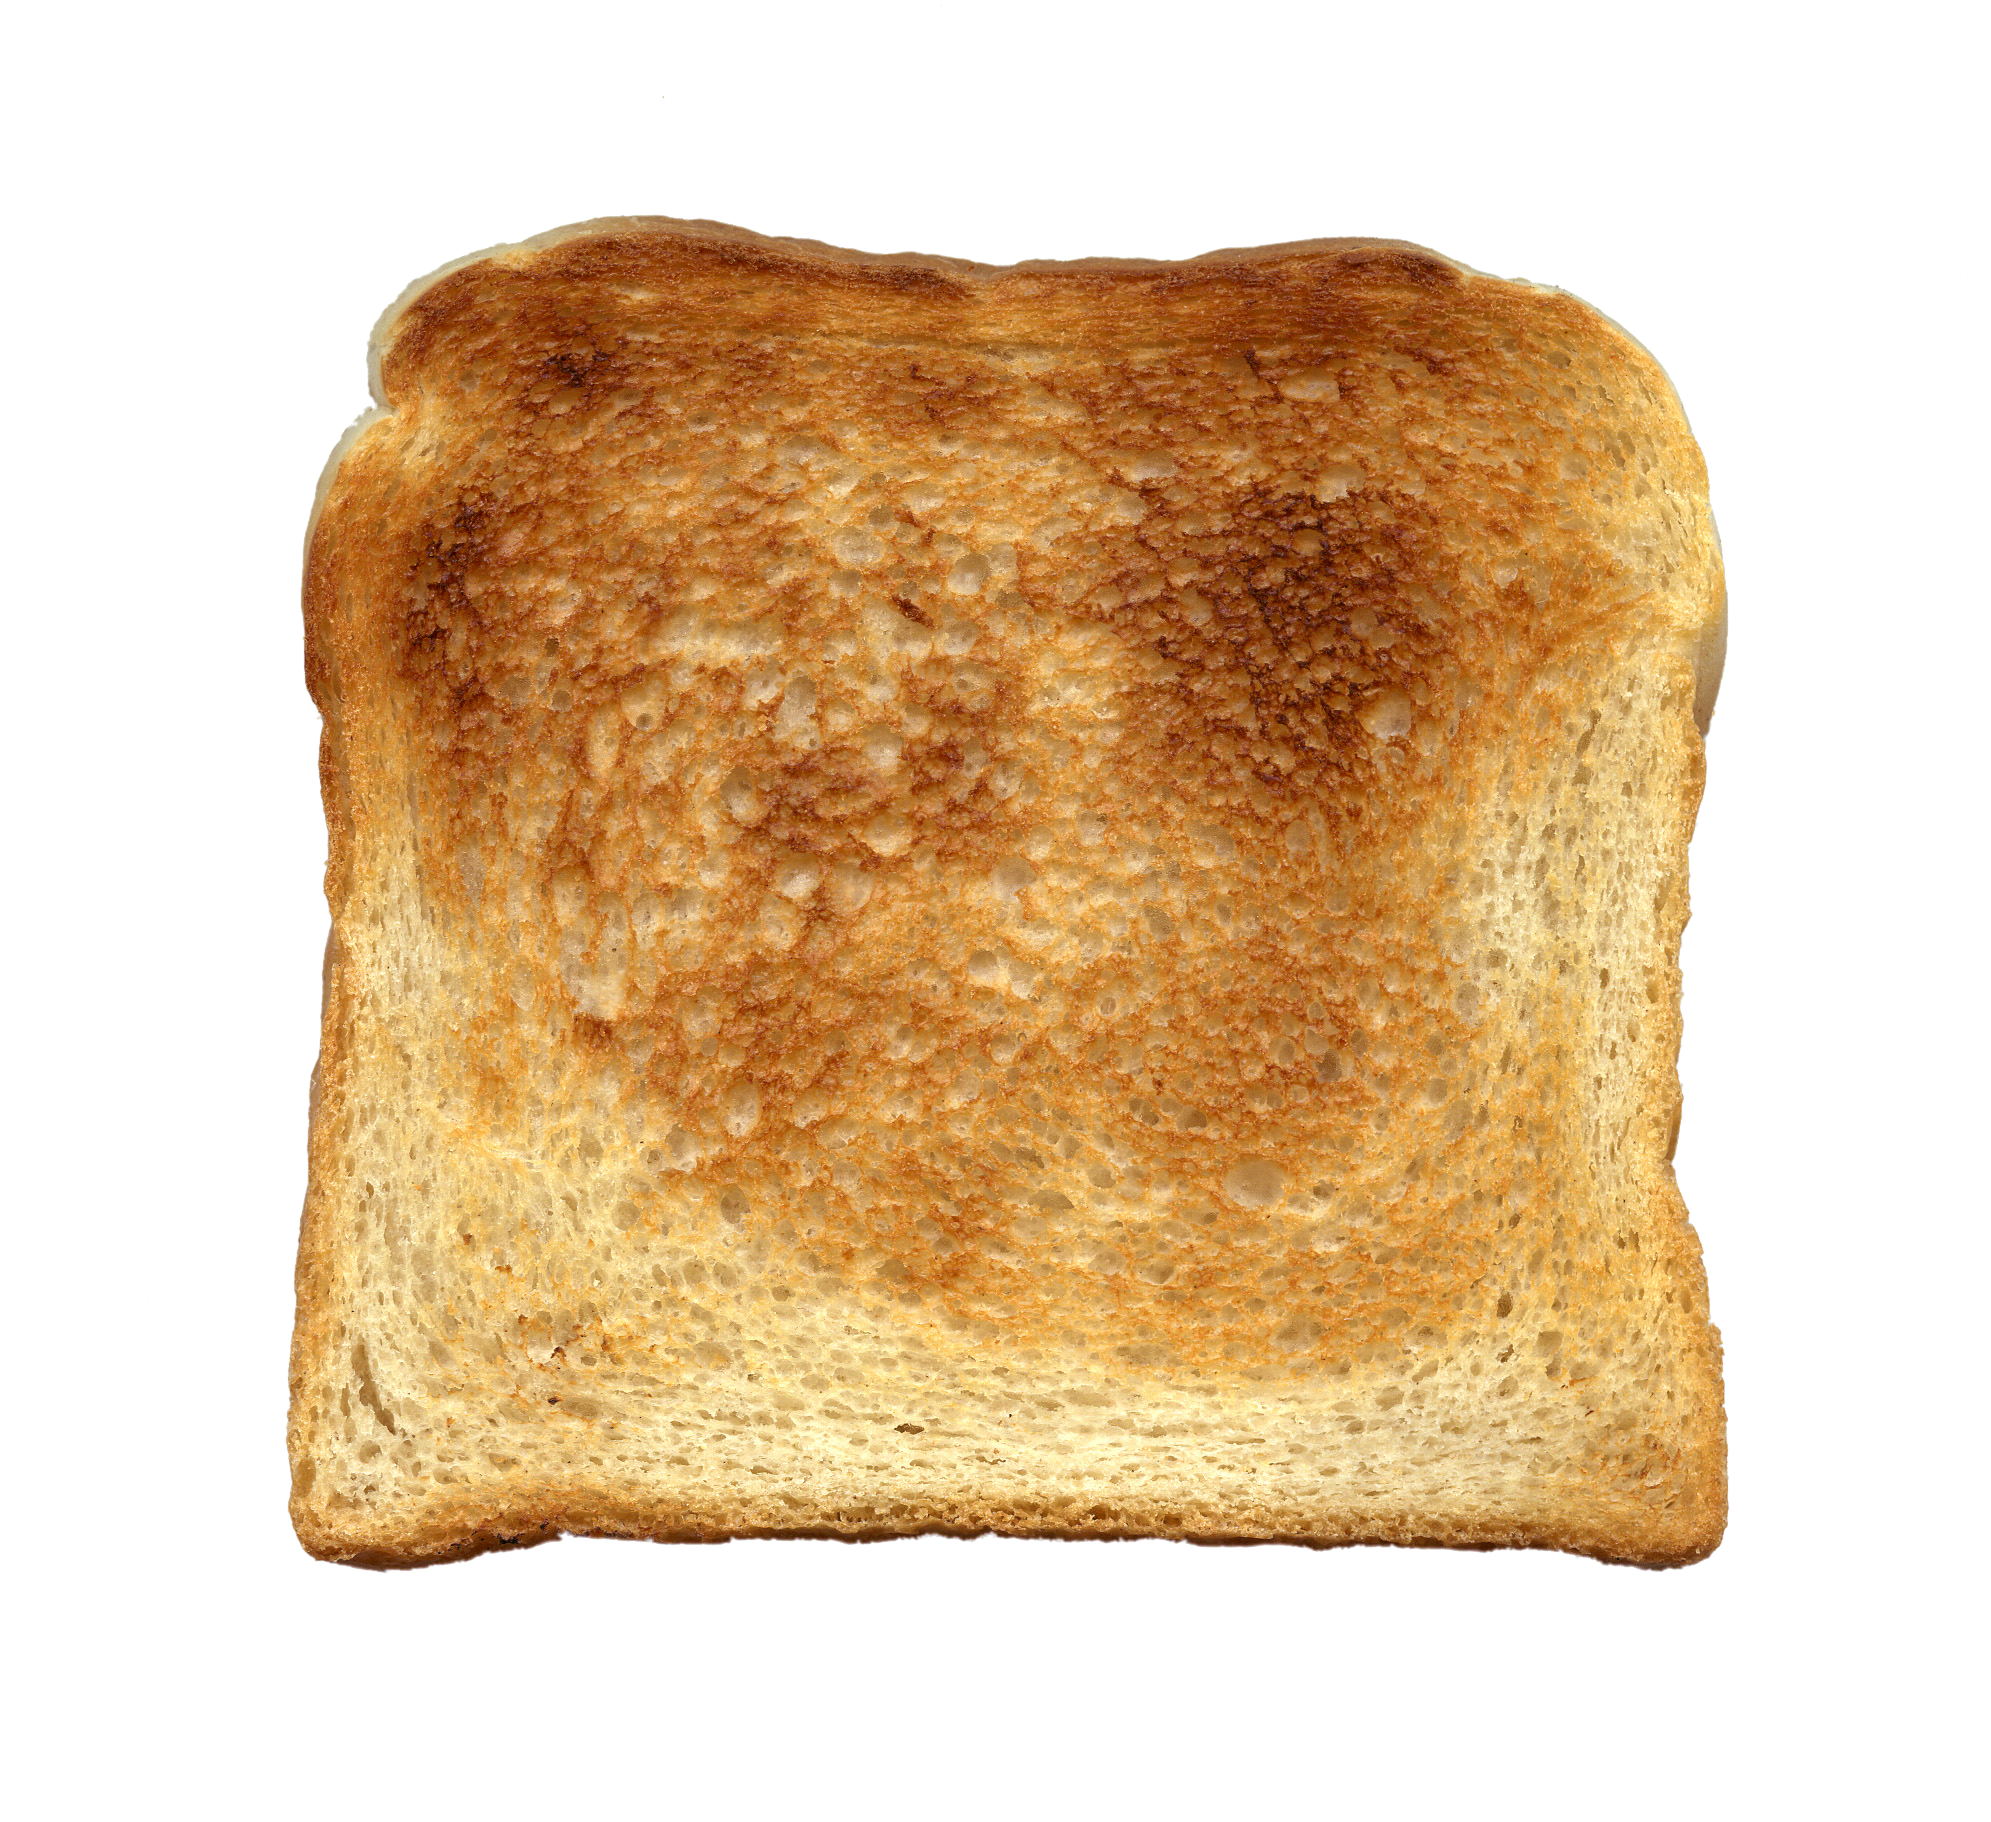 Toast clipart Royalty Free Clker art clip